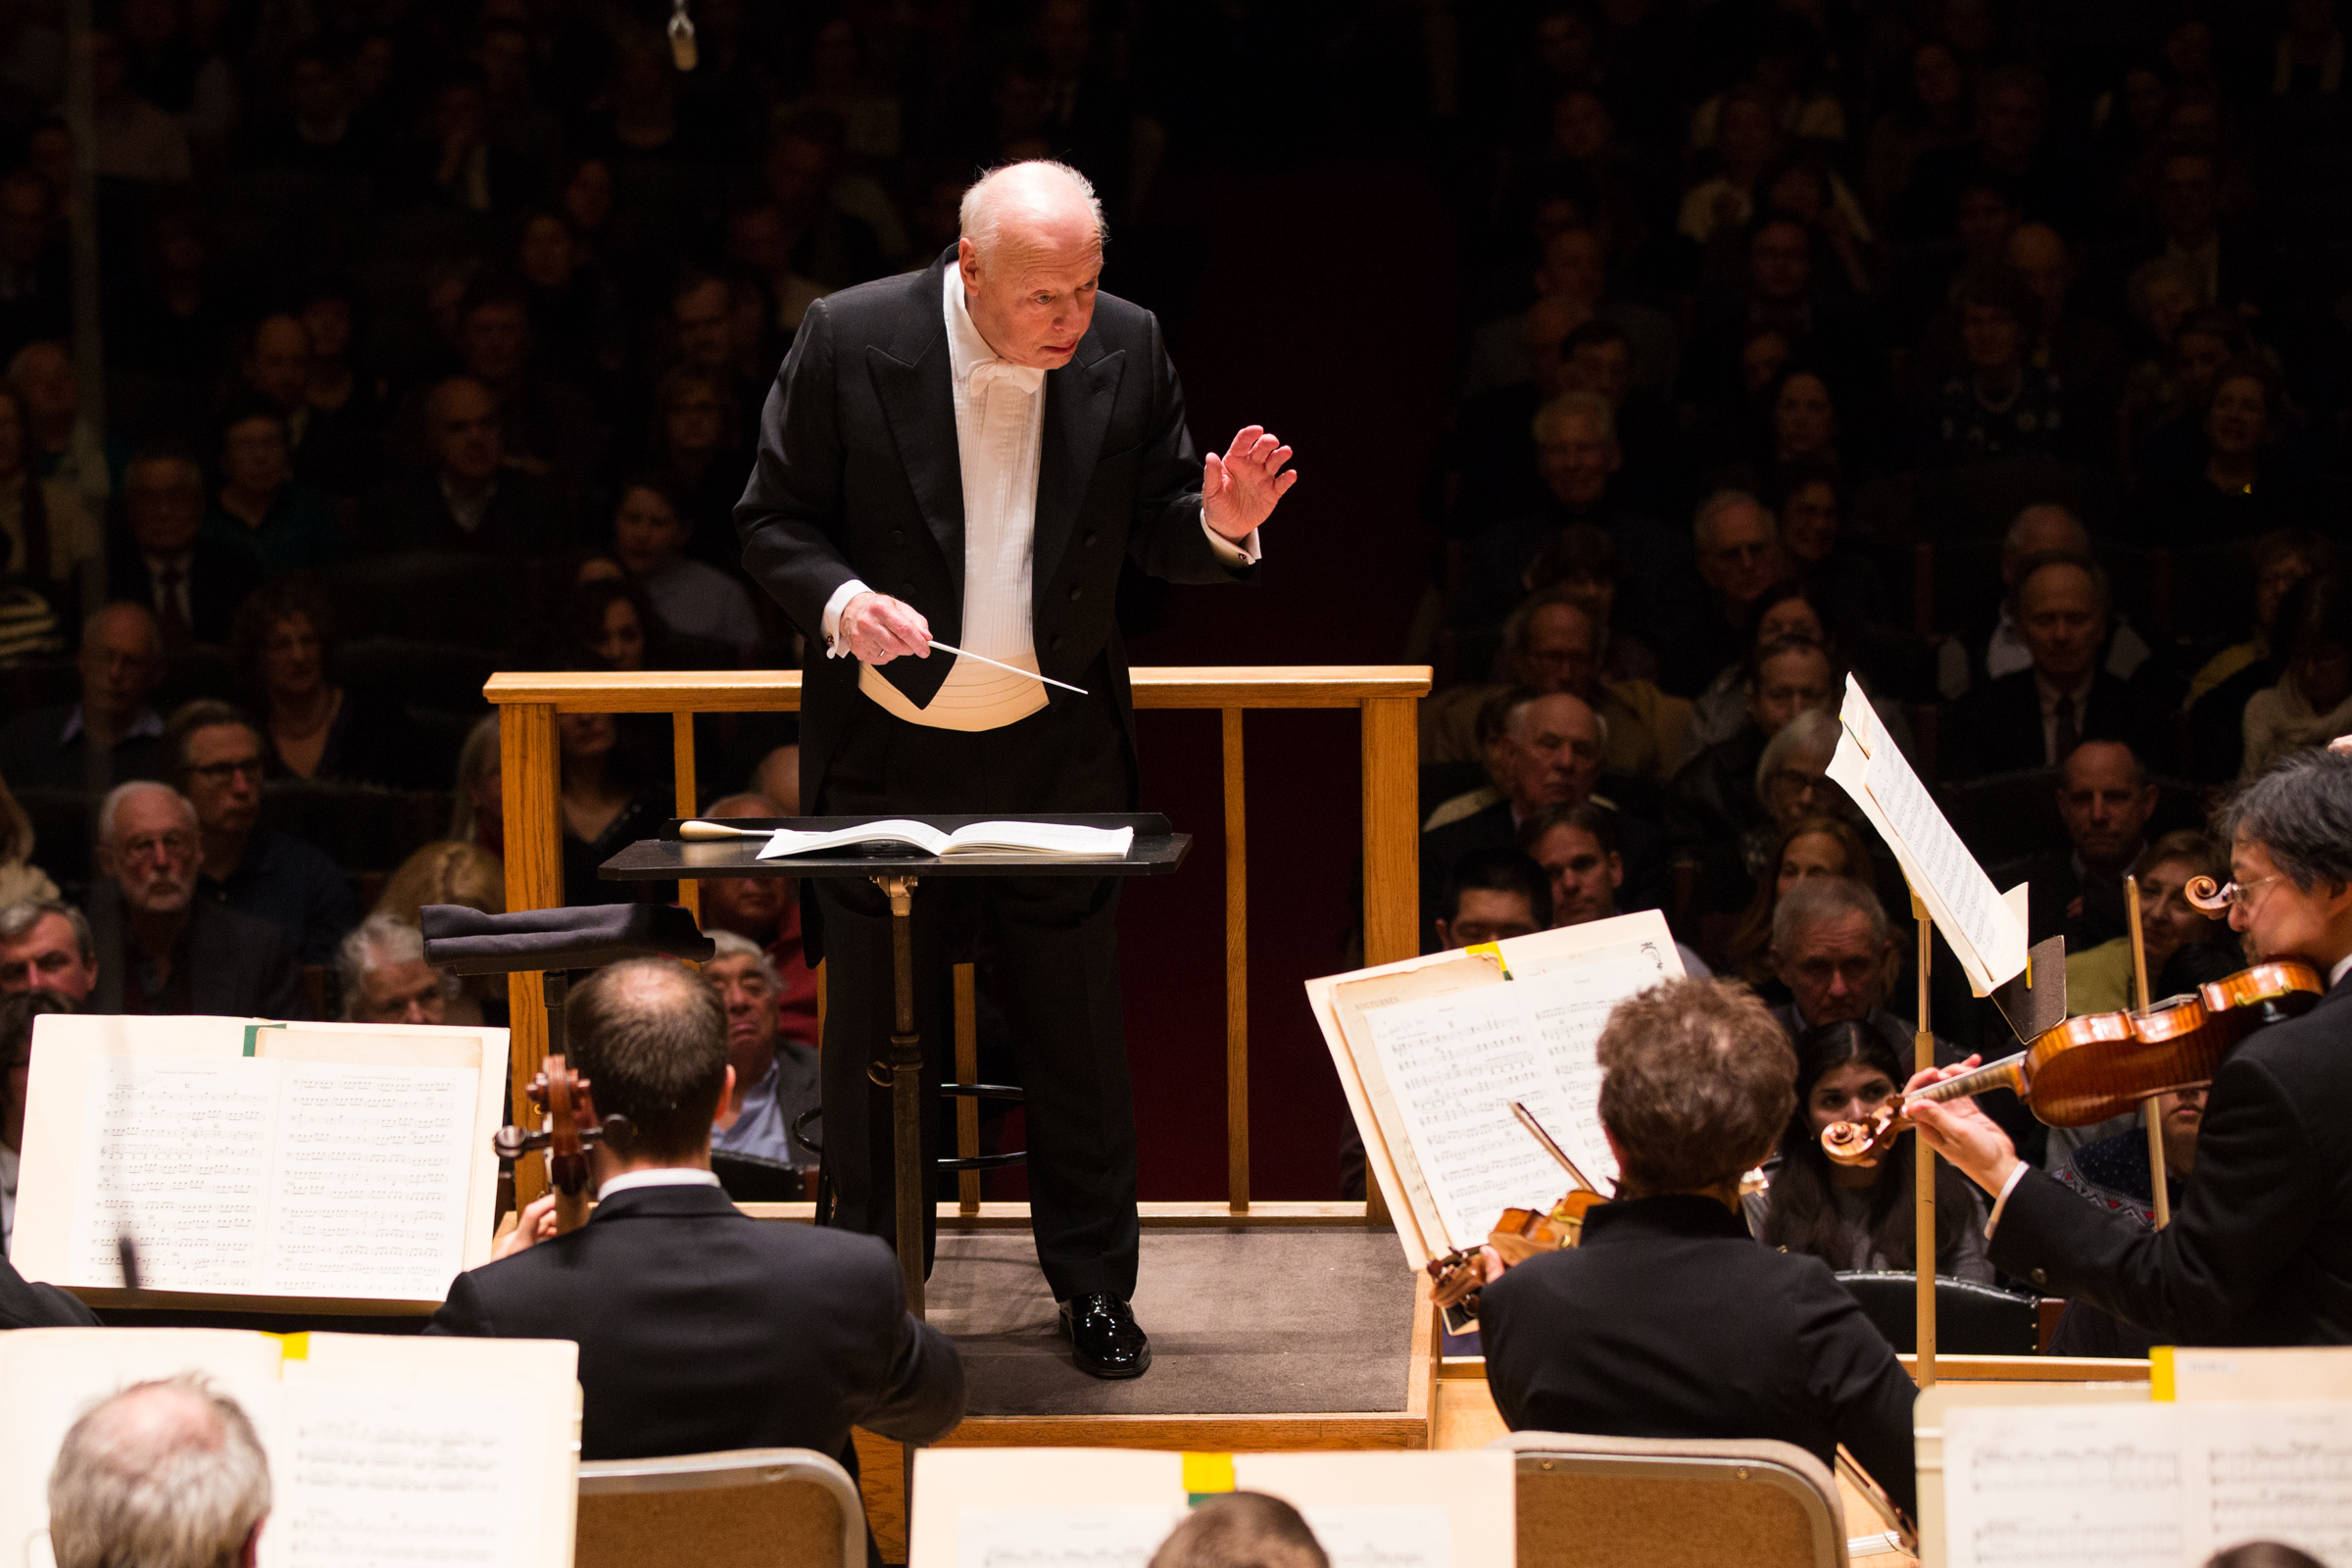 Bernard Haitink conducts the Boston Symphony Orchestra, March 16, 2017. Robert Torres photograph